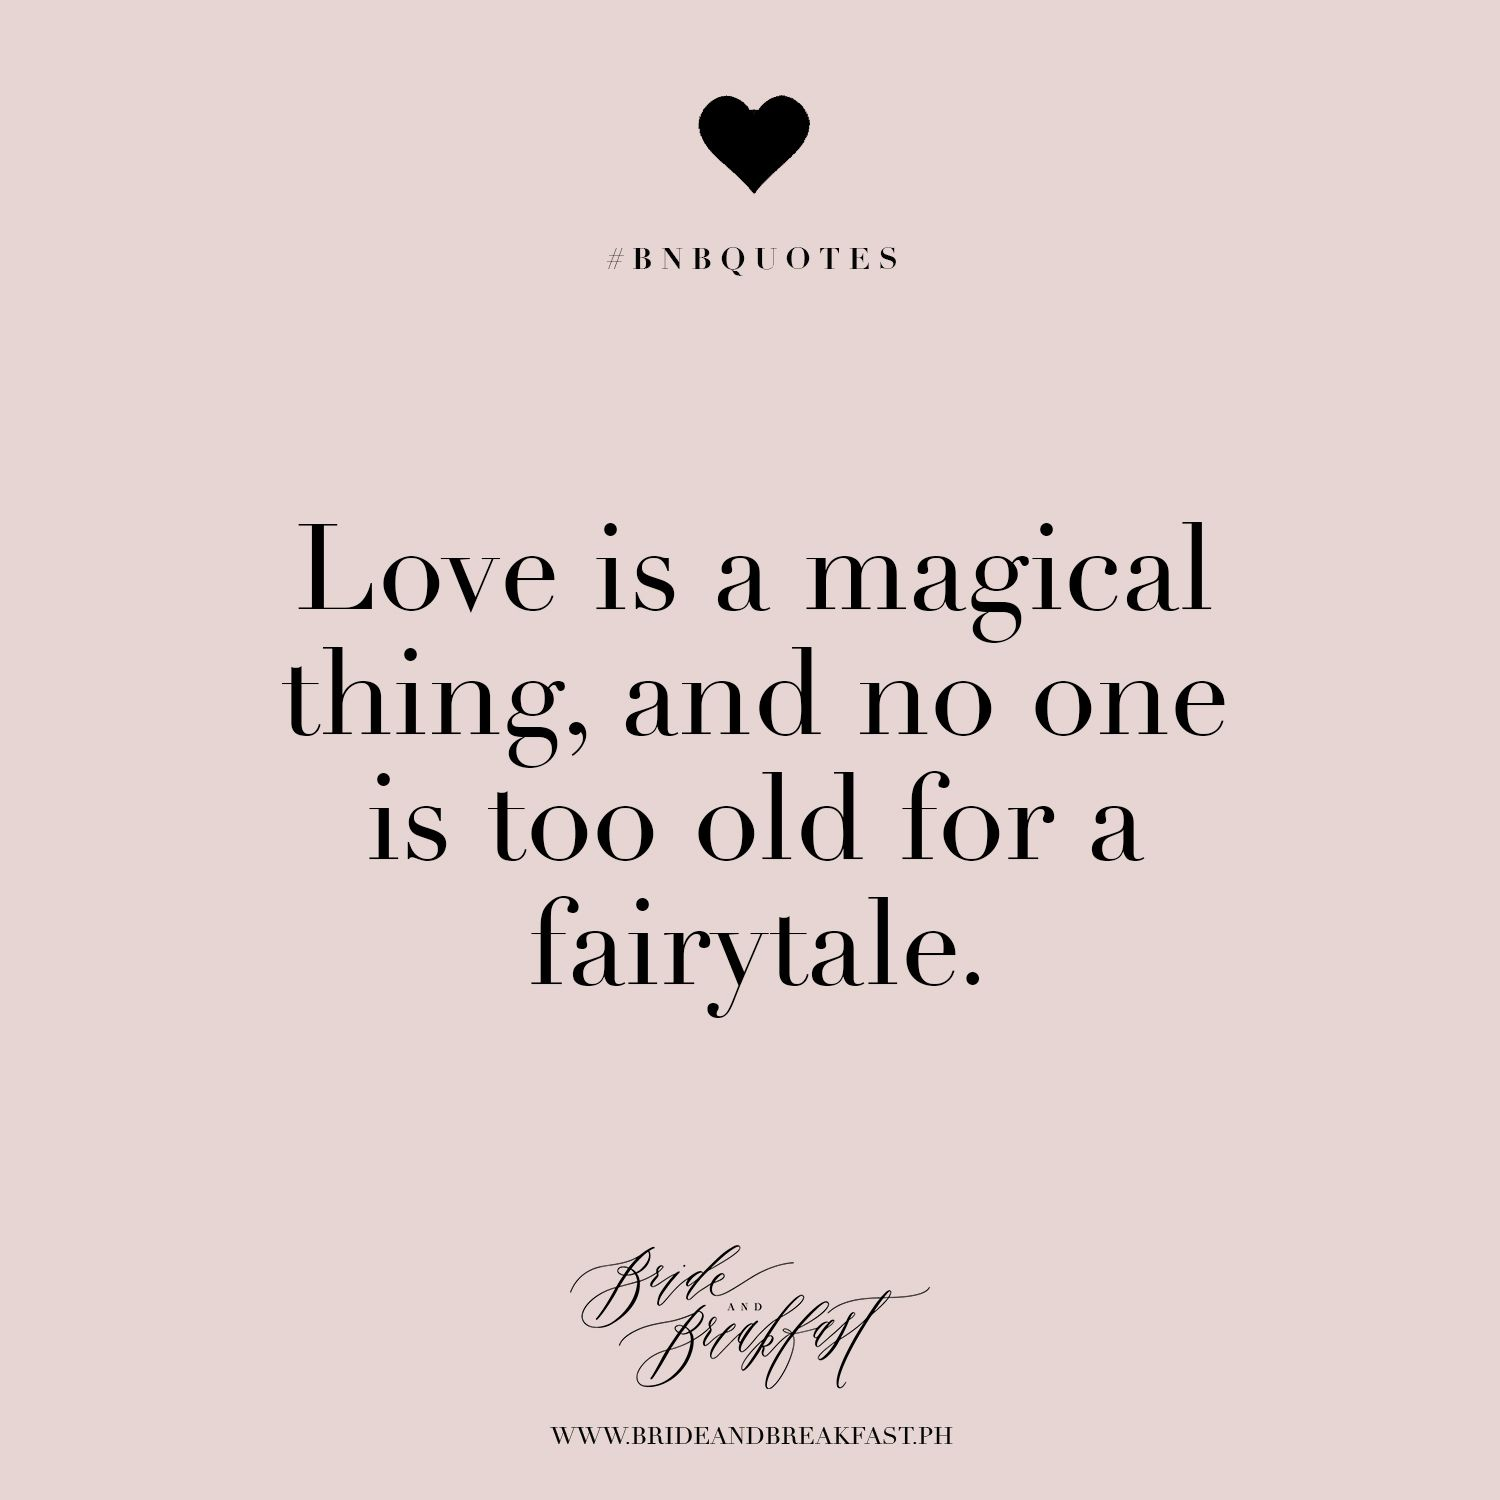 Love is a magical thing and no one is too old for a fairytale